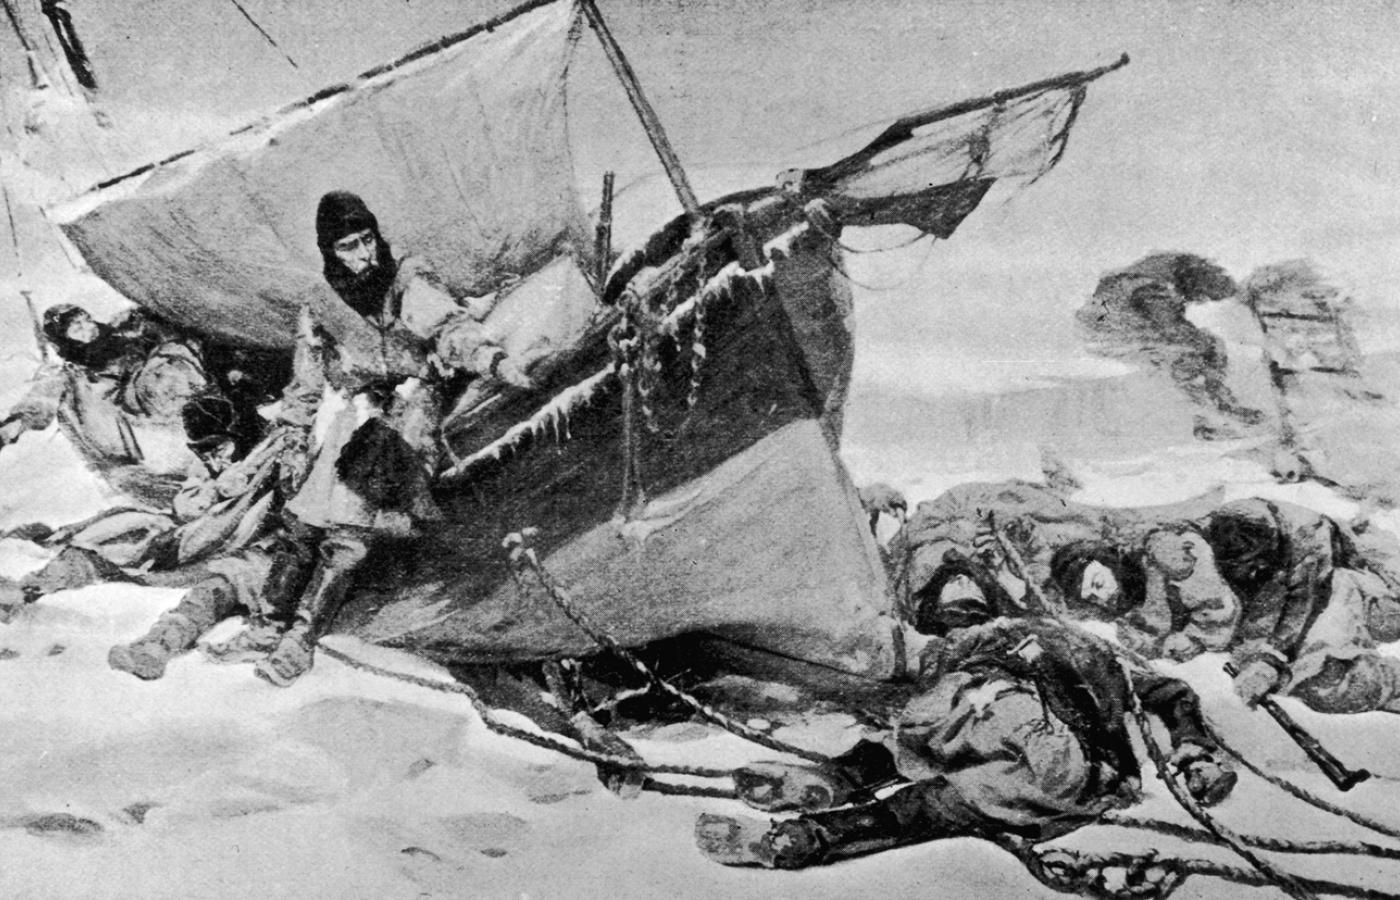 The Northwest Passage lured mariners like Sir John Franklin to their deaths.